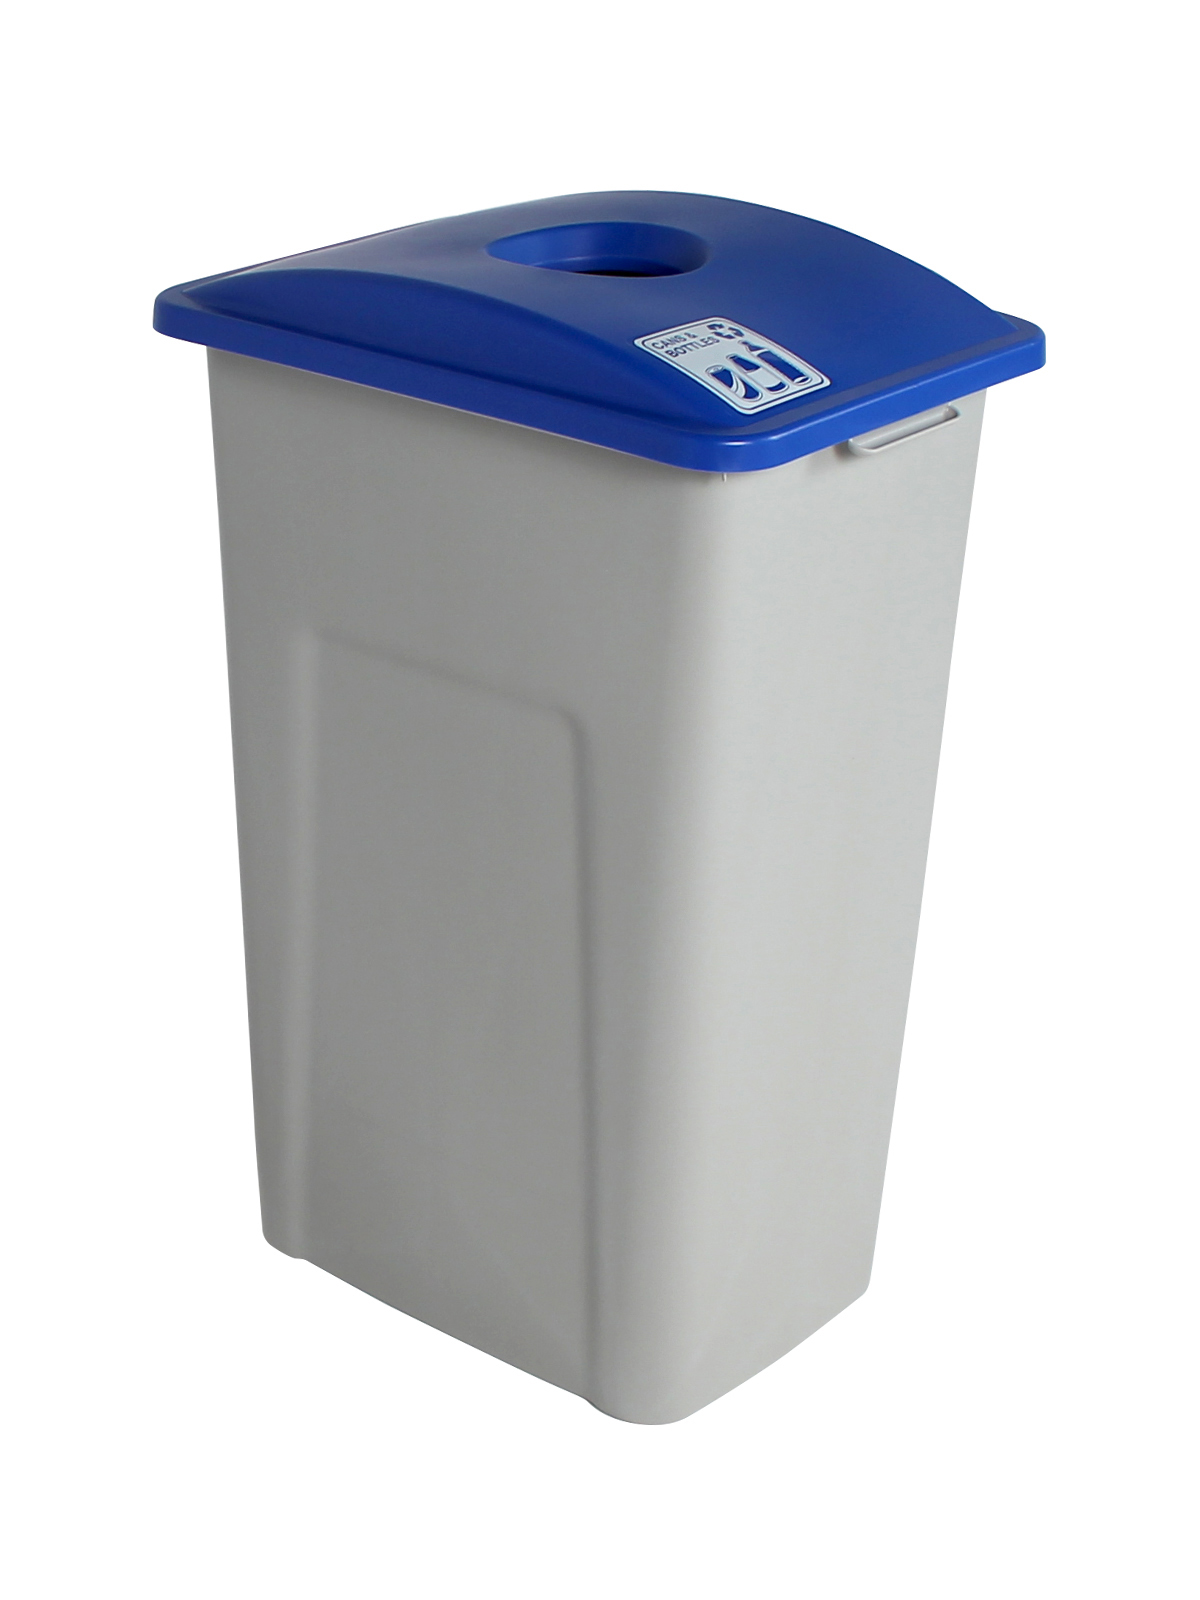 WASTE WATCHER XL - Single - Cans & Bottles - Circle - Grey-Blue